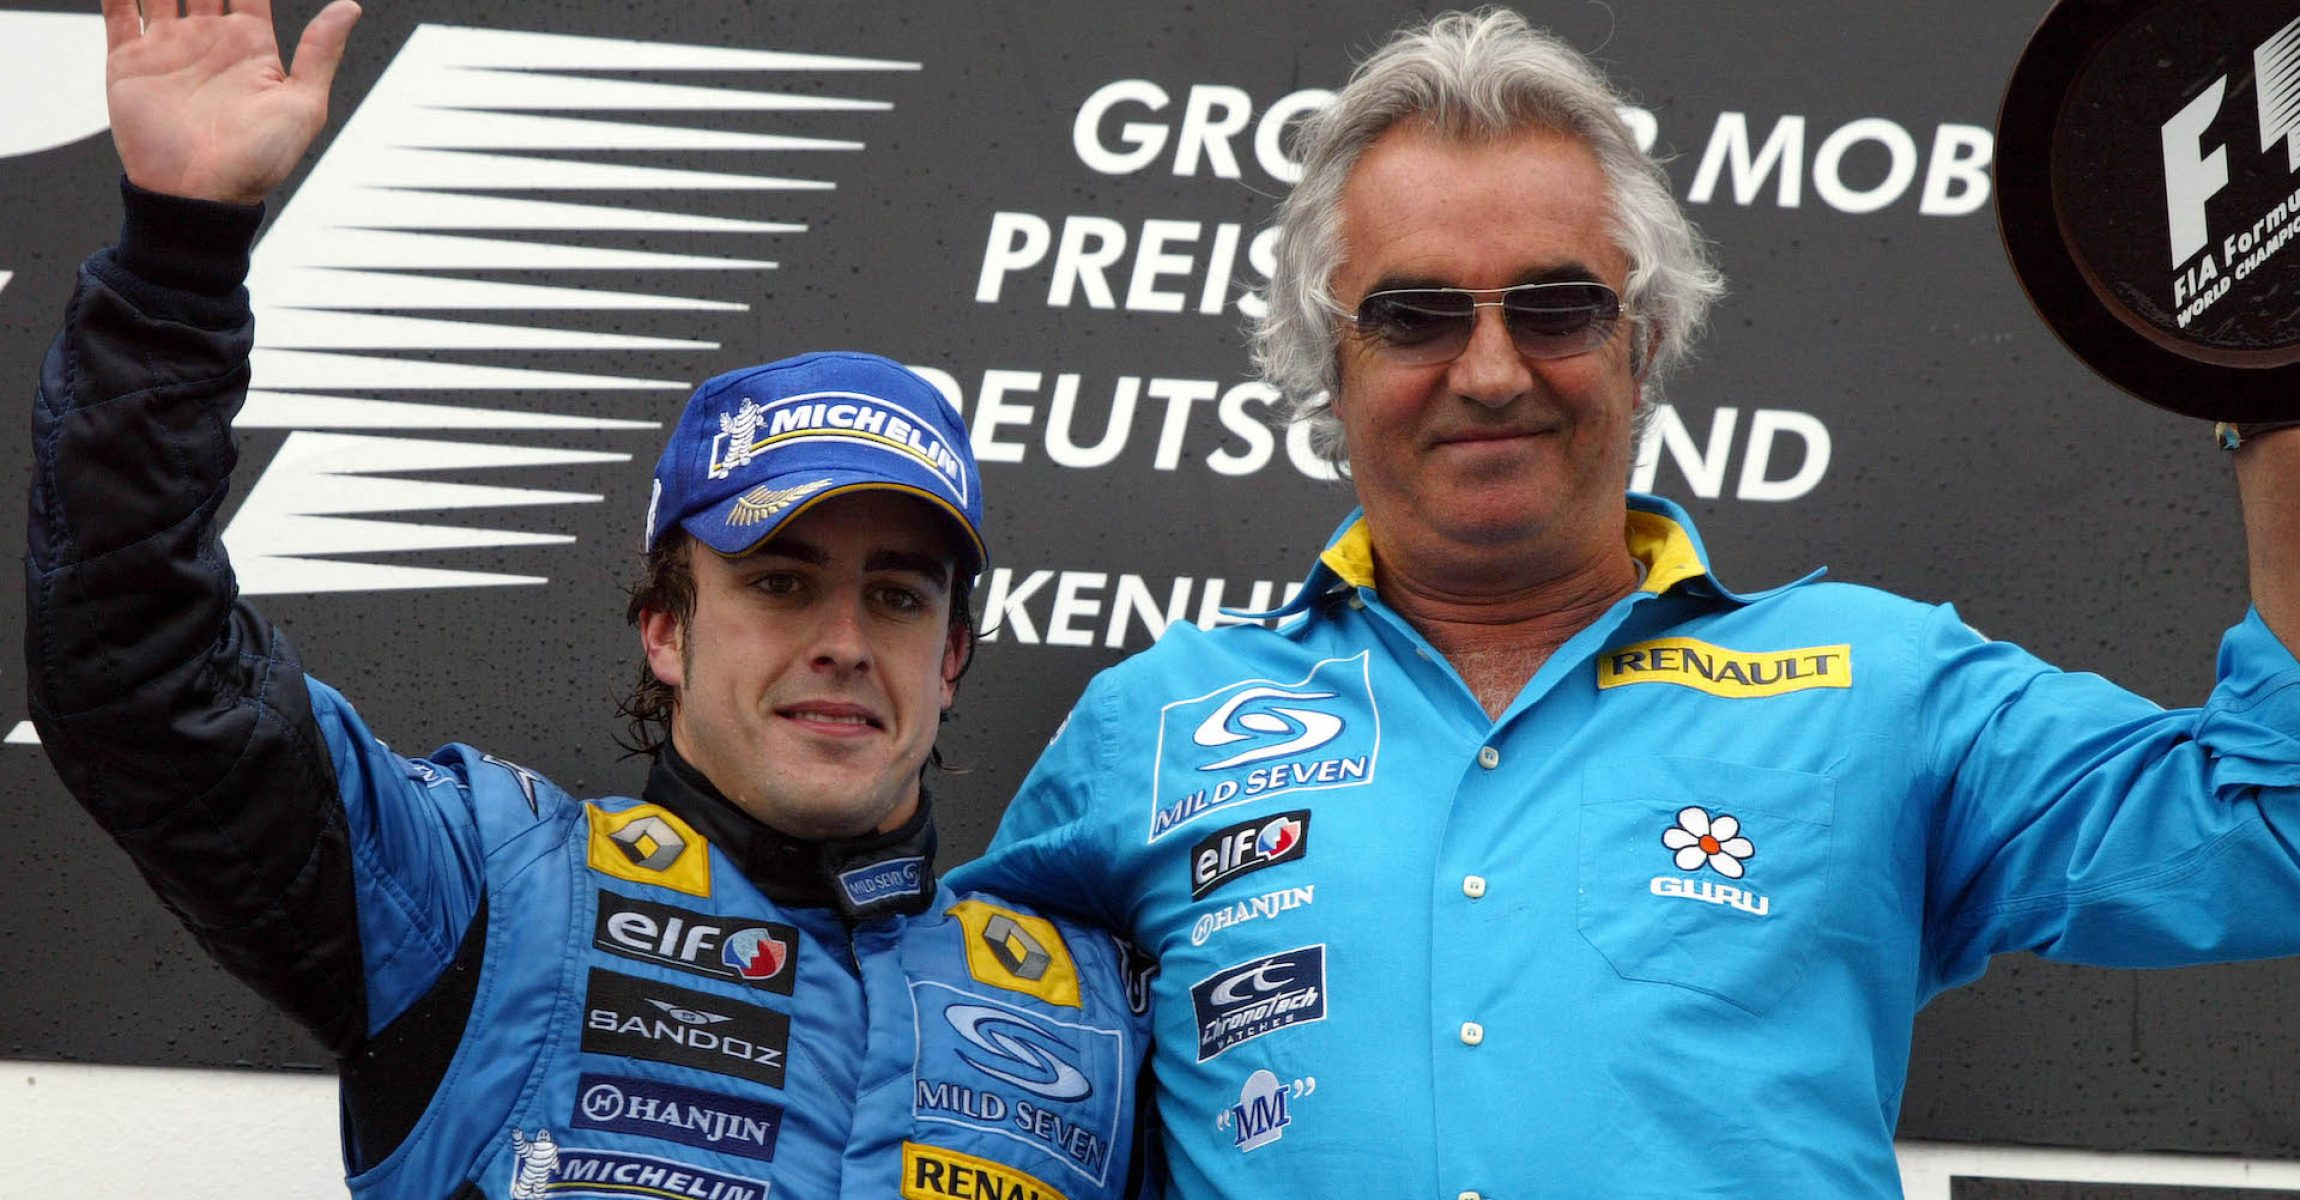 24.07.2005 Hockenheim, Germany, Fernando Alonso, ESP, Renault F1 Team and Flavio Briatore, ITA, Renault, Teamchief, Managing Director - July, Formula 1 World Championship, Rd 12, German Grand Prix, Hockenheim, Germany, Grosser Mobil 1 Preis von Deutschland, GER, Hockenheimring Baden-W¸rttemberg, Podium - www.xpb.cc, EMail: info@xpb.cc - copy of publication required for printed pictures.